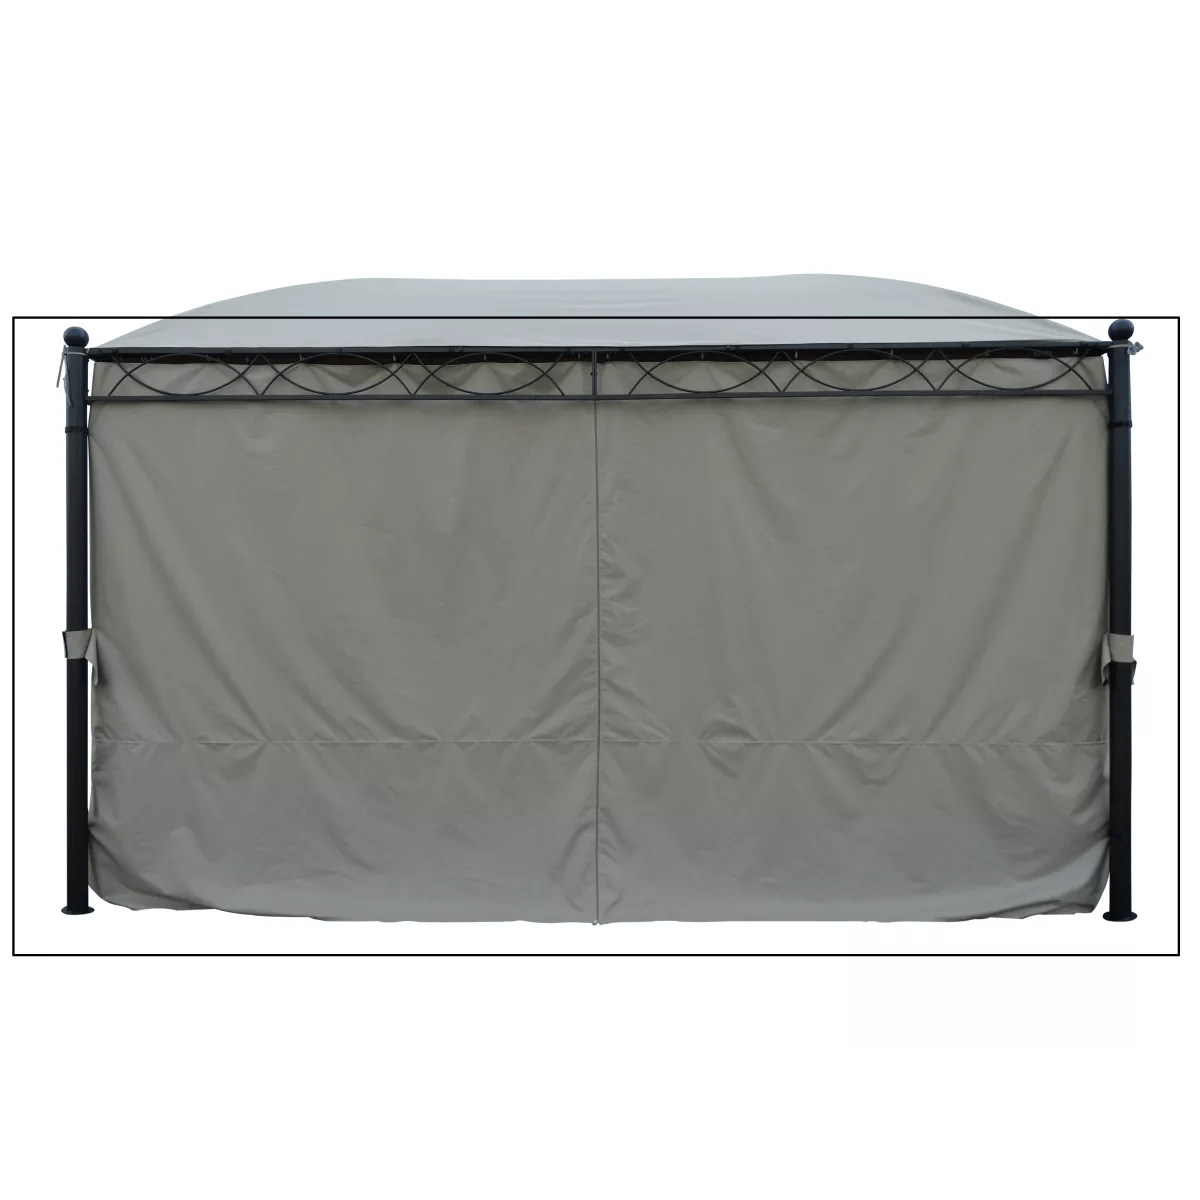 Gazebo Giardino Ikea Telo Gazebo 3x3 Ikea Great Gazebo Ikea Ammero With Telo